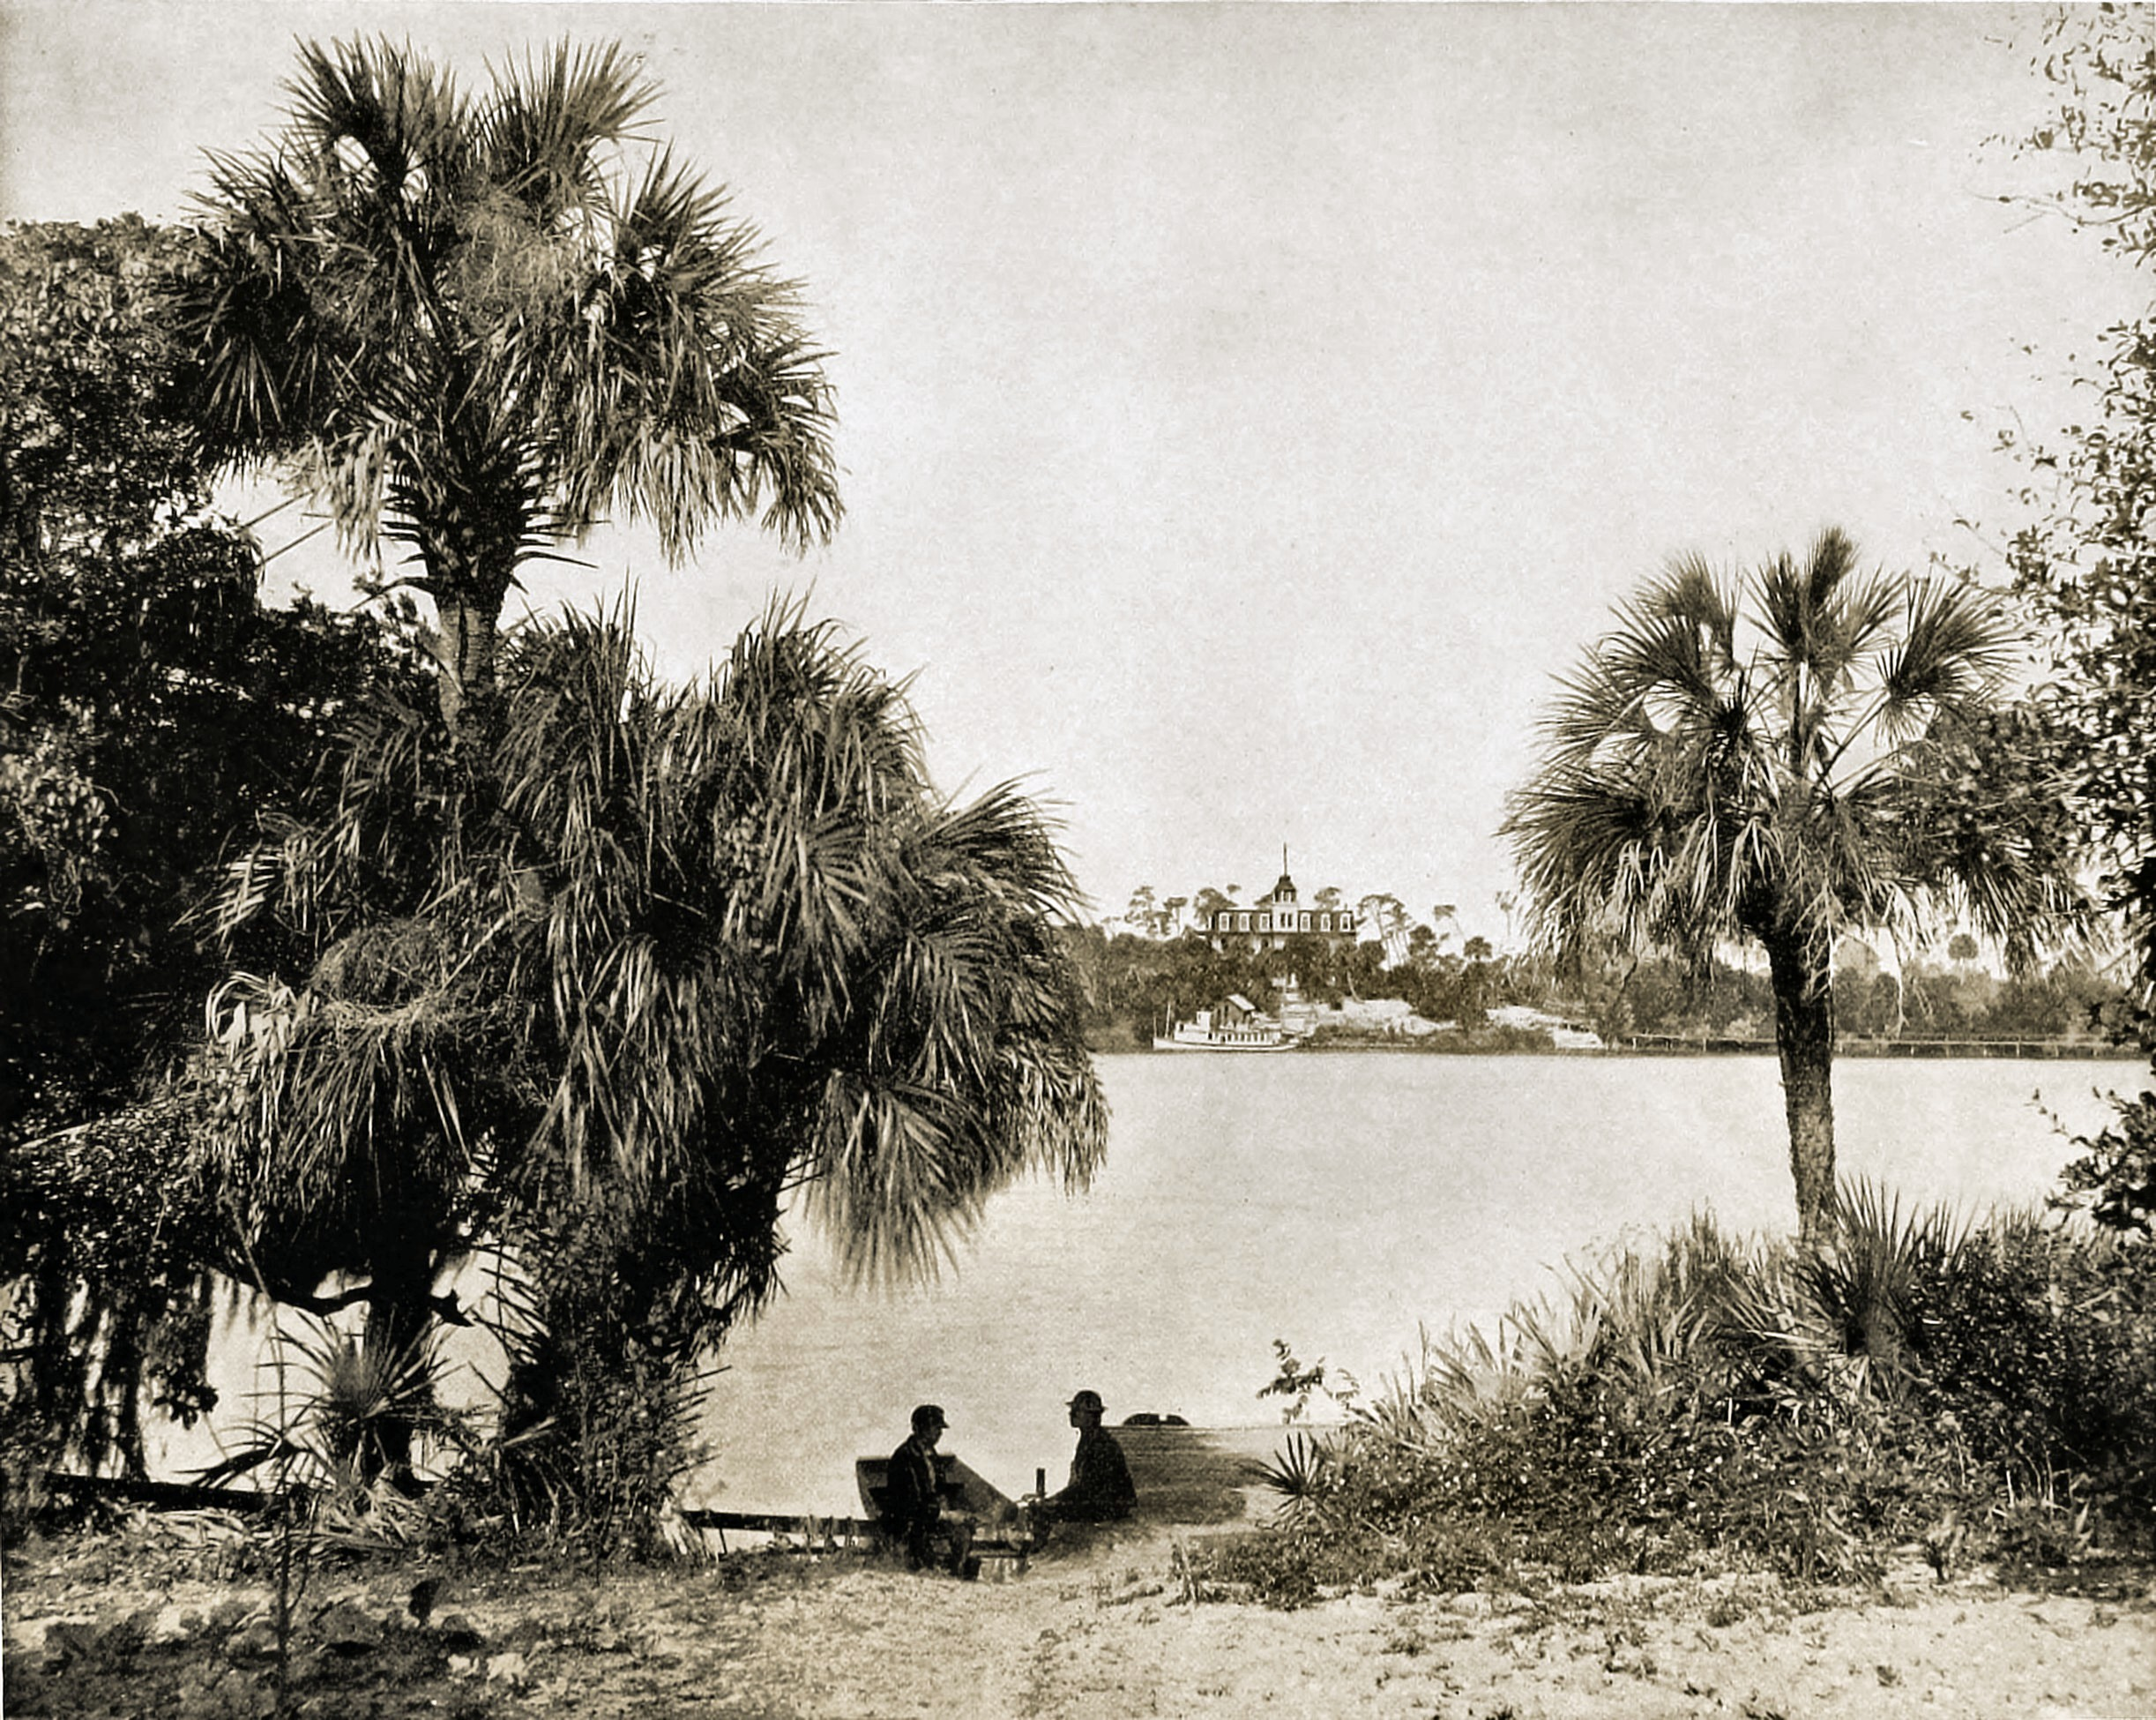 On Indian River, Florida, USA about 1892